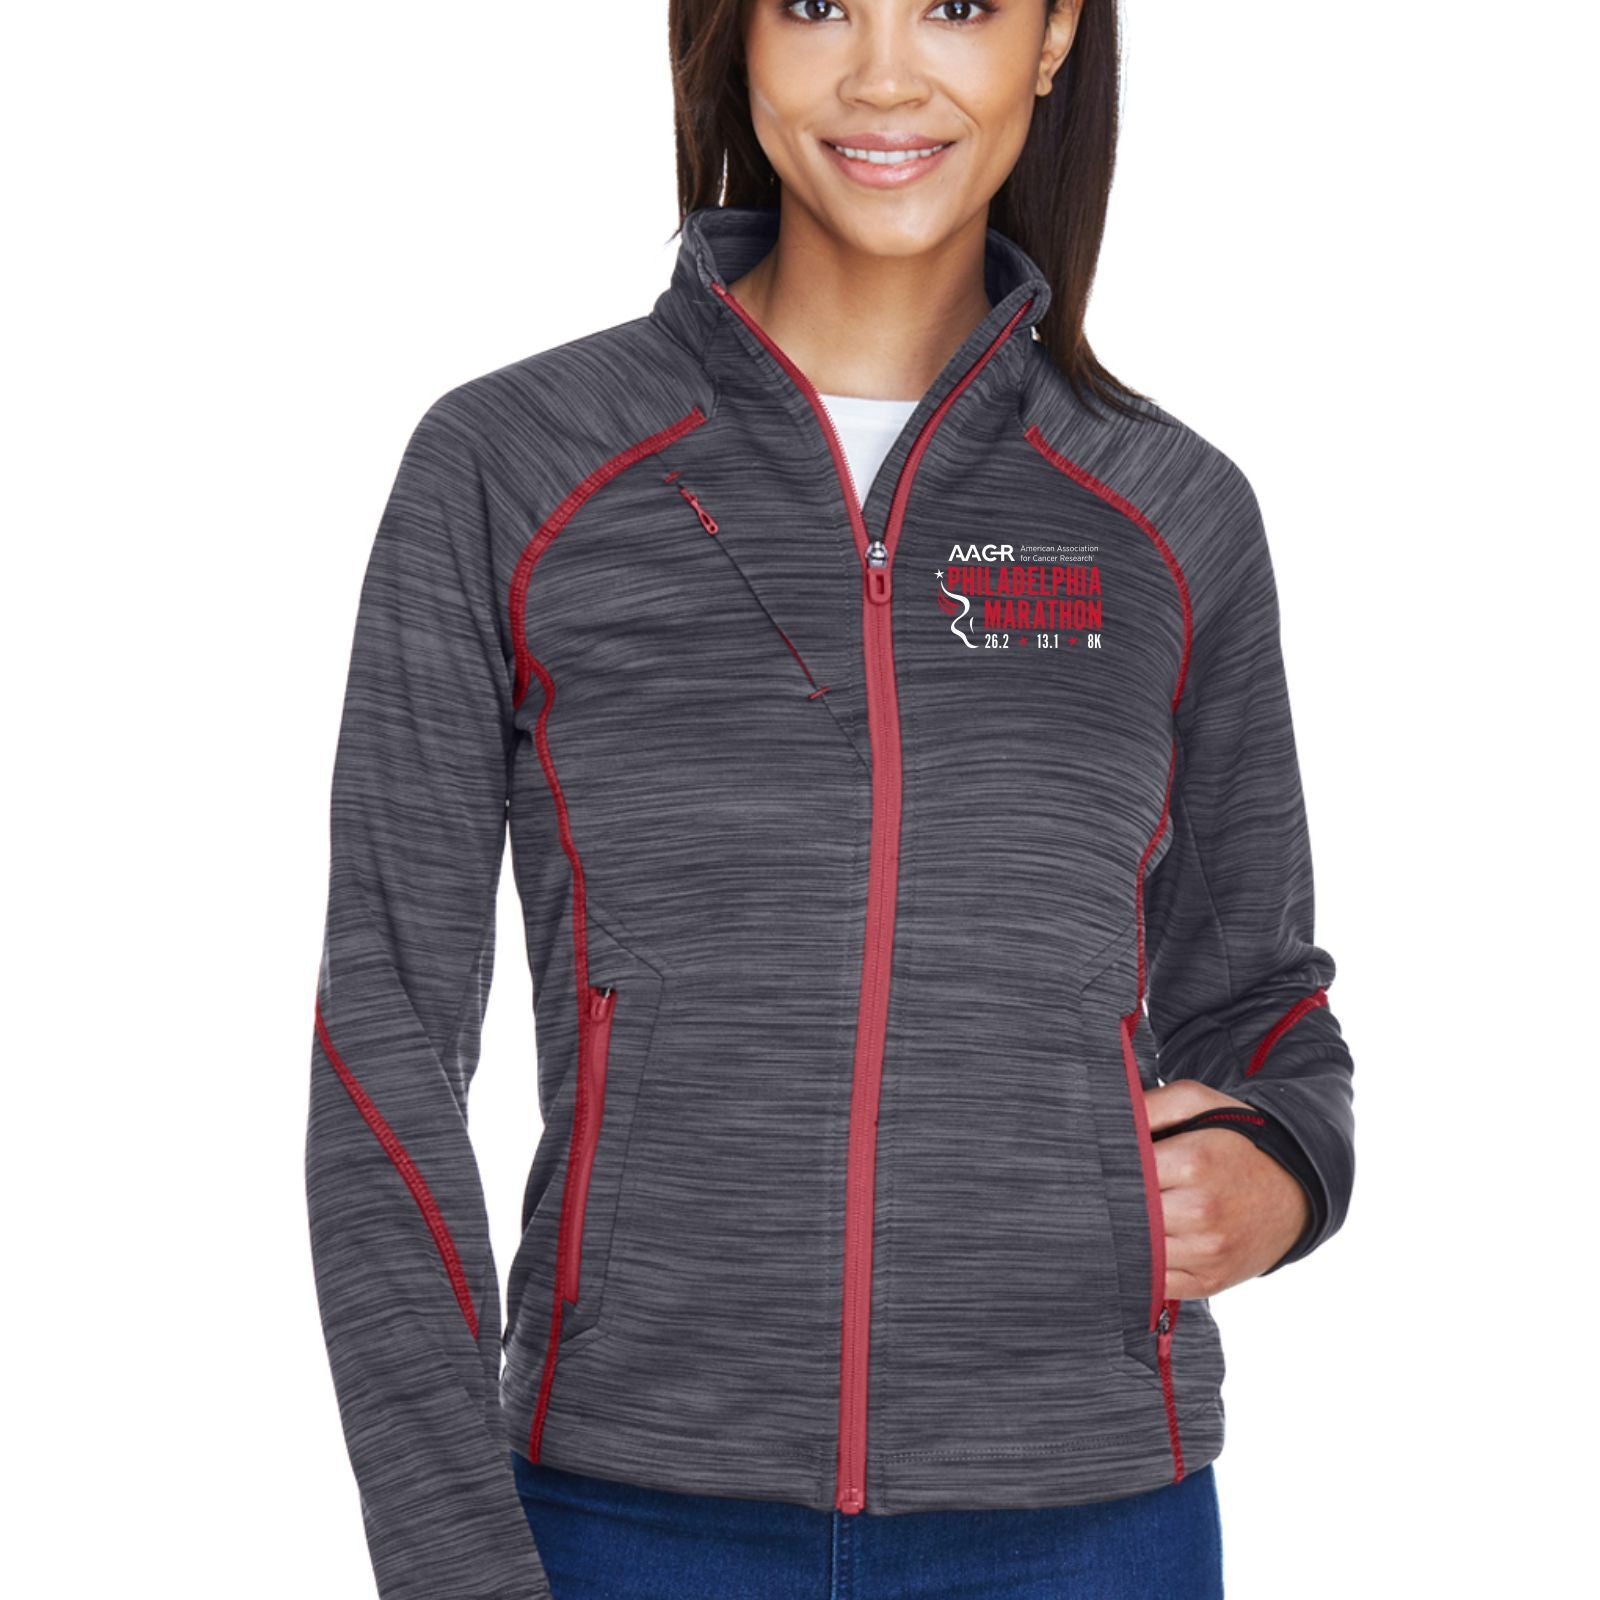 AACR Philadelphia Marathon 'Big Back' Women's Fleece Flux Melange Full Zip Jacket - Carbon/Olympic Red